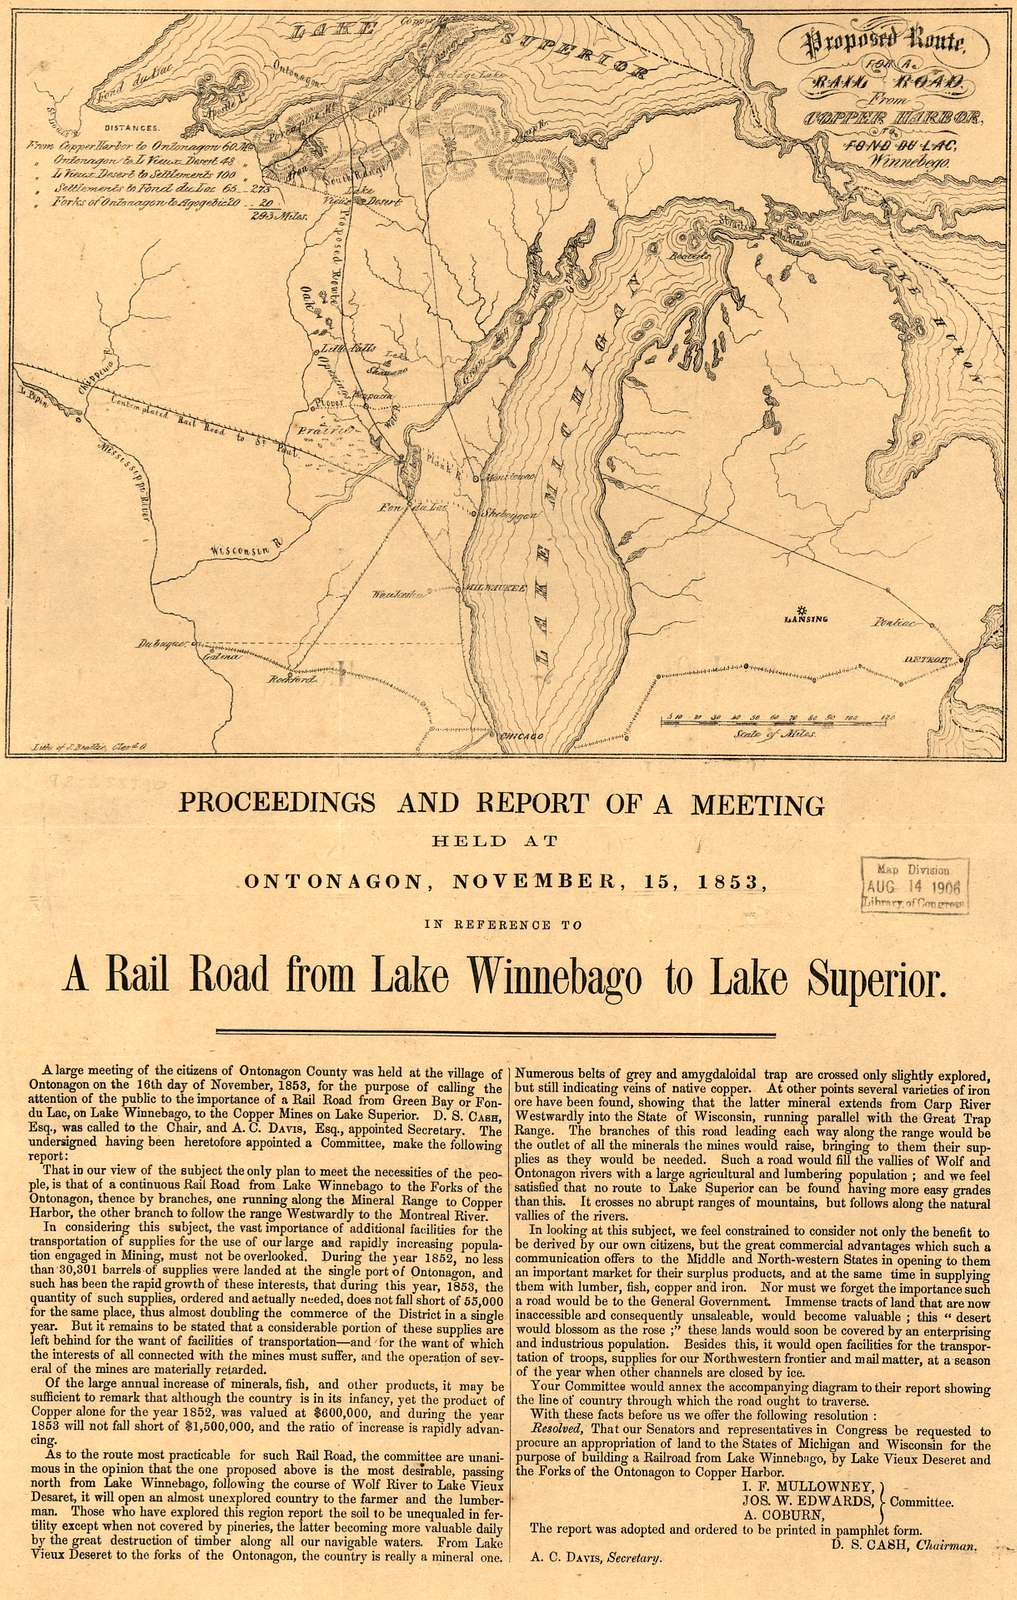 Proposed route for a rail road from Copper Harbor, to Fond Du Lac, Winnebego.